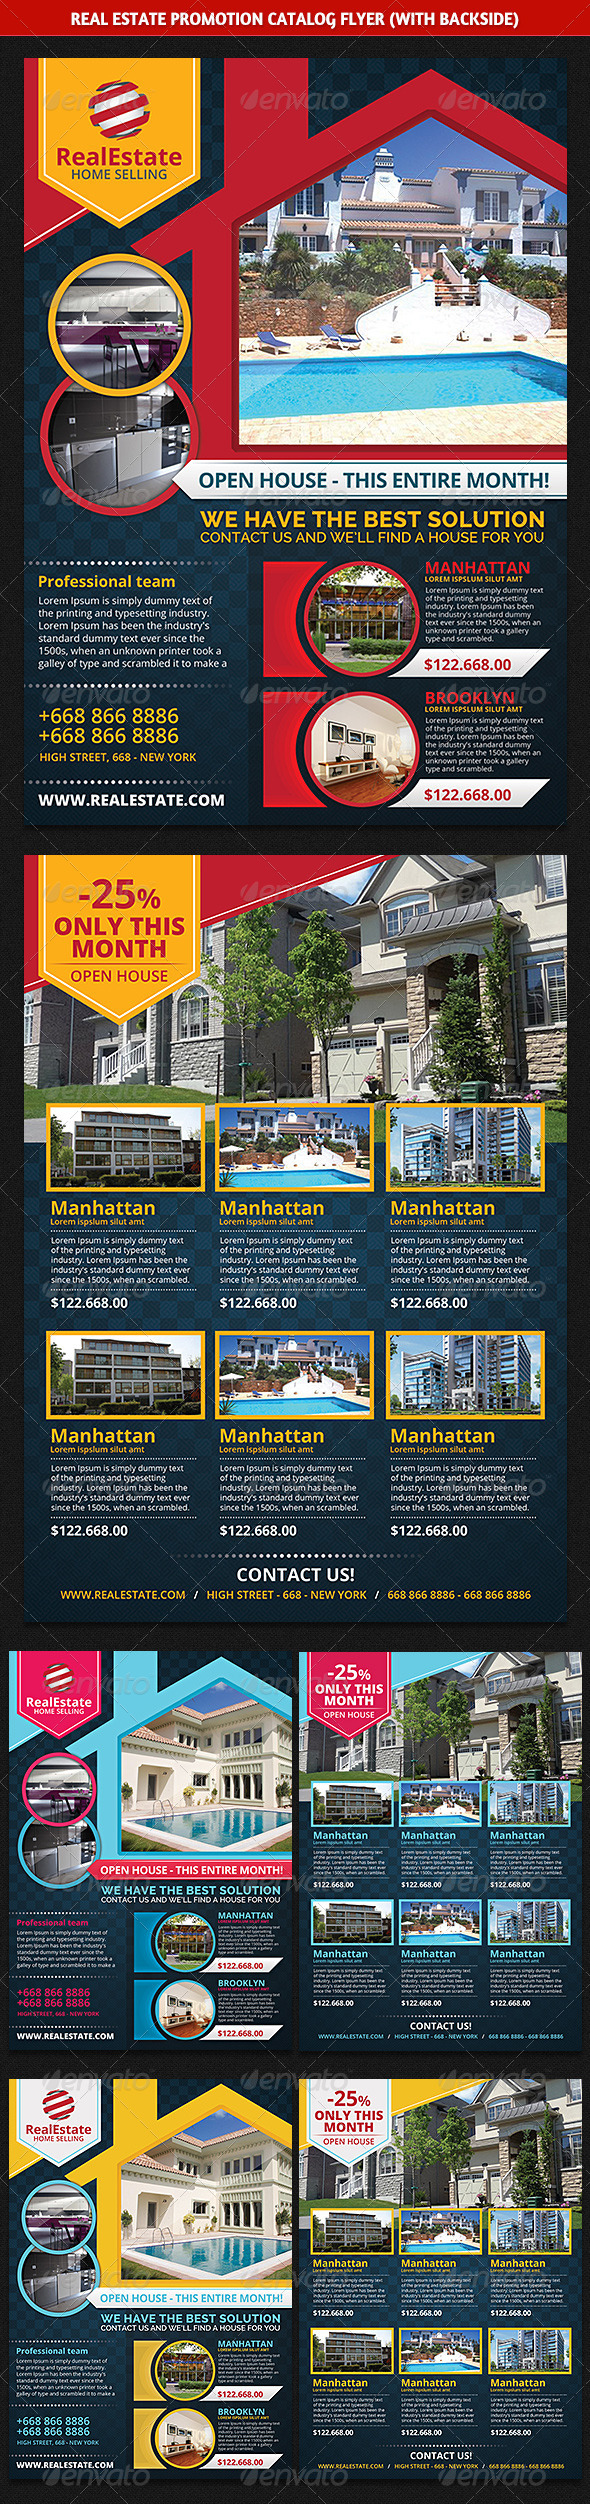 Real Estate Promotion Catalog Flyer